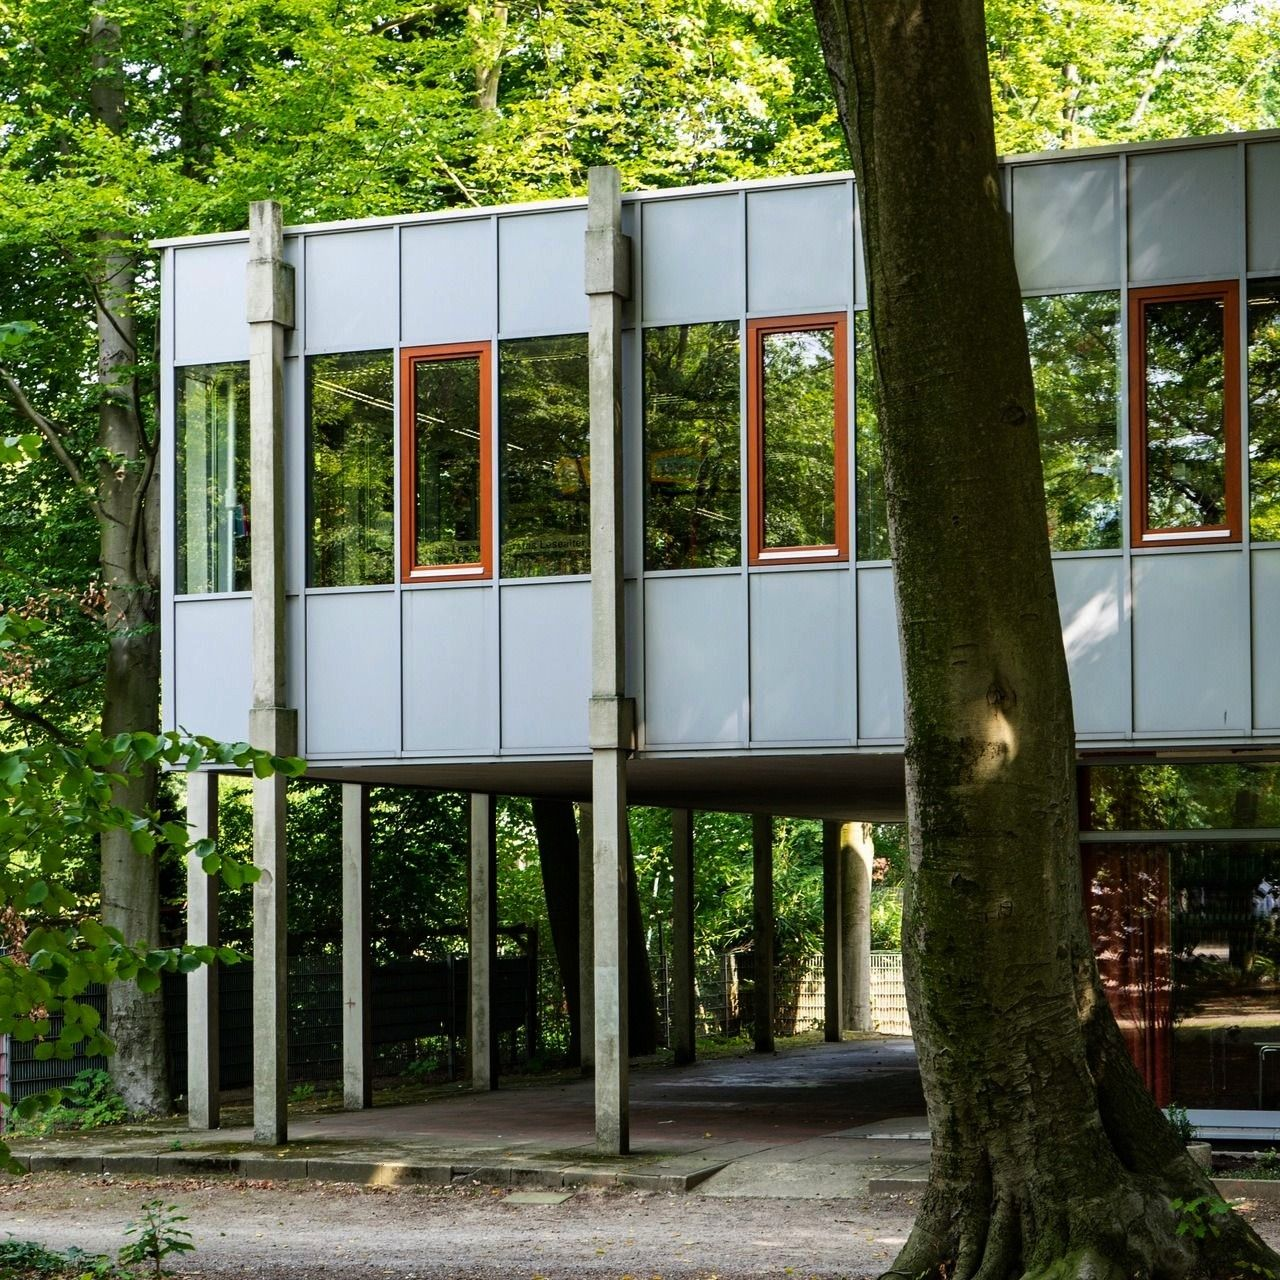 and Family Library Türmchen 1960 in Marl Germany by Van den Broek  Bakema Childrens and Family Library Türmchen 1960 in Marl Germany by Van den Broek  Bakema  W...